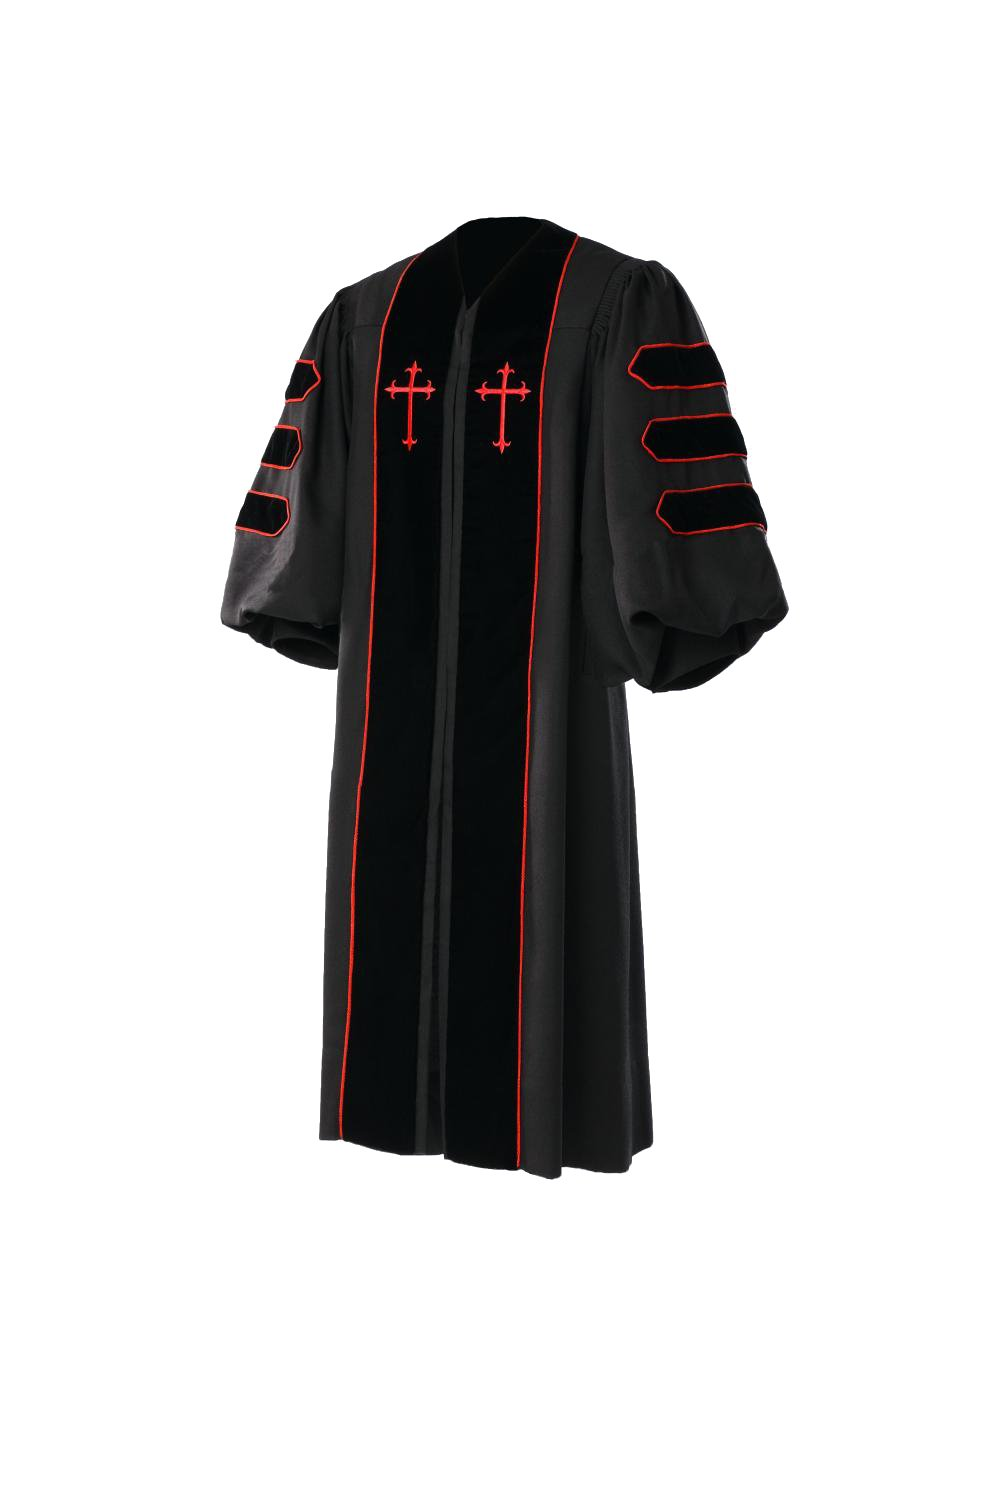 Manufaktur Women Dr. of Divinity Clergy Robe MERINO CASHMERE SILK Size 54 Black/Red